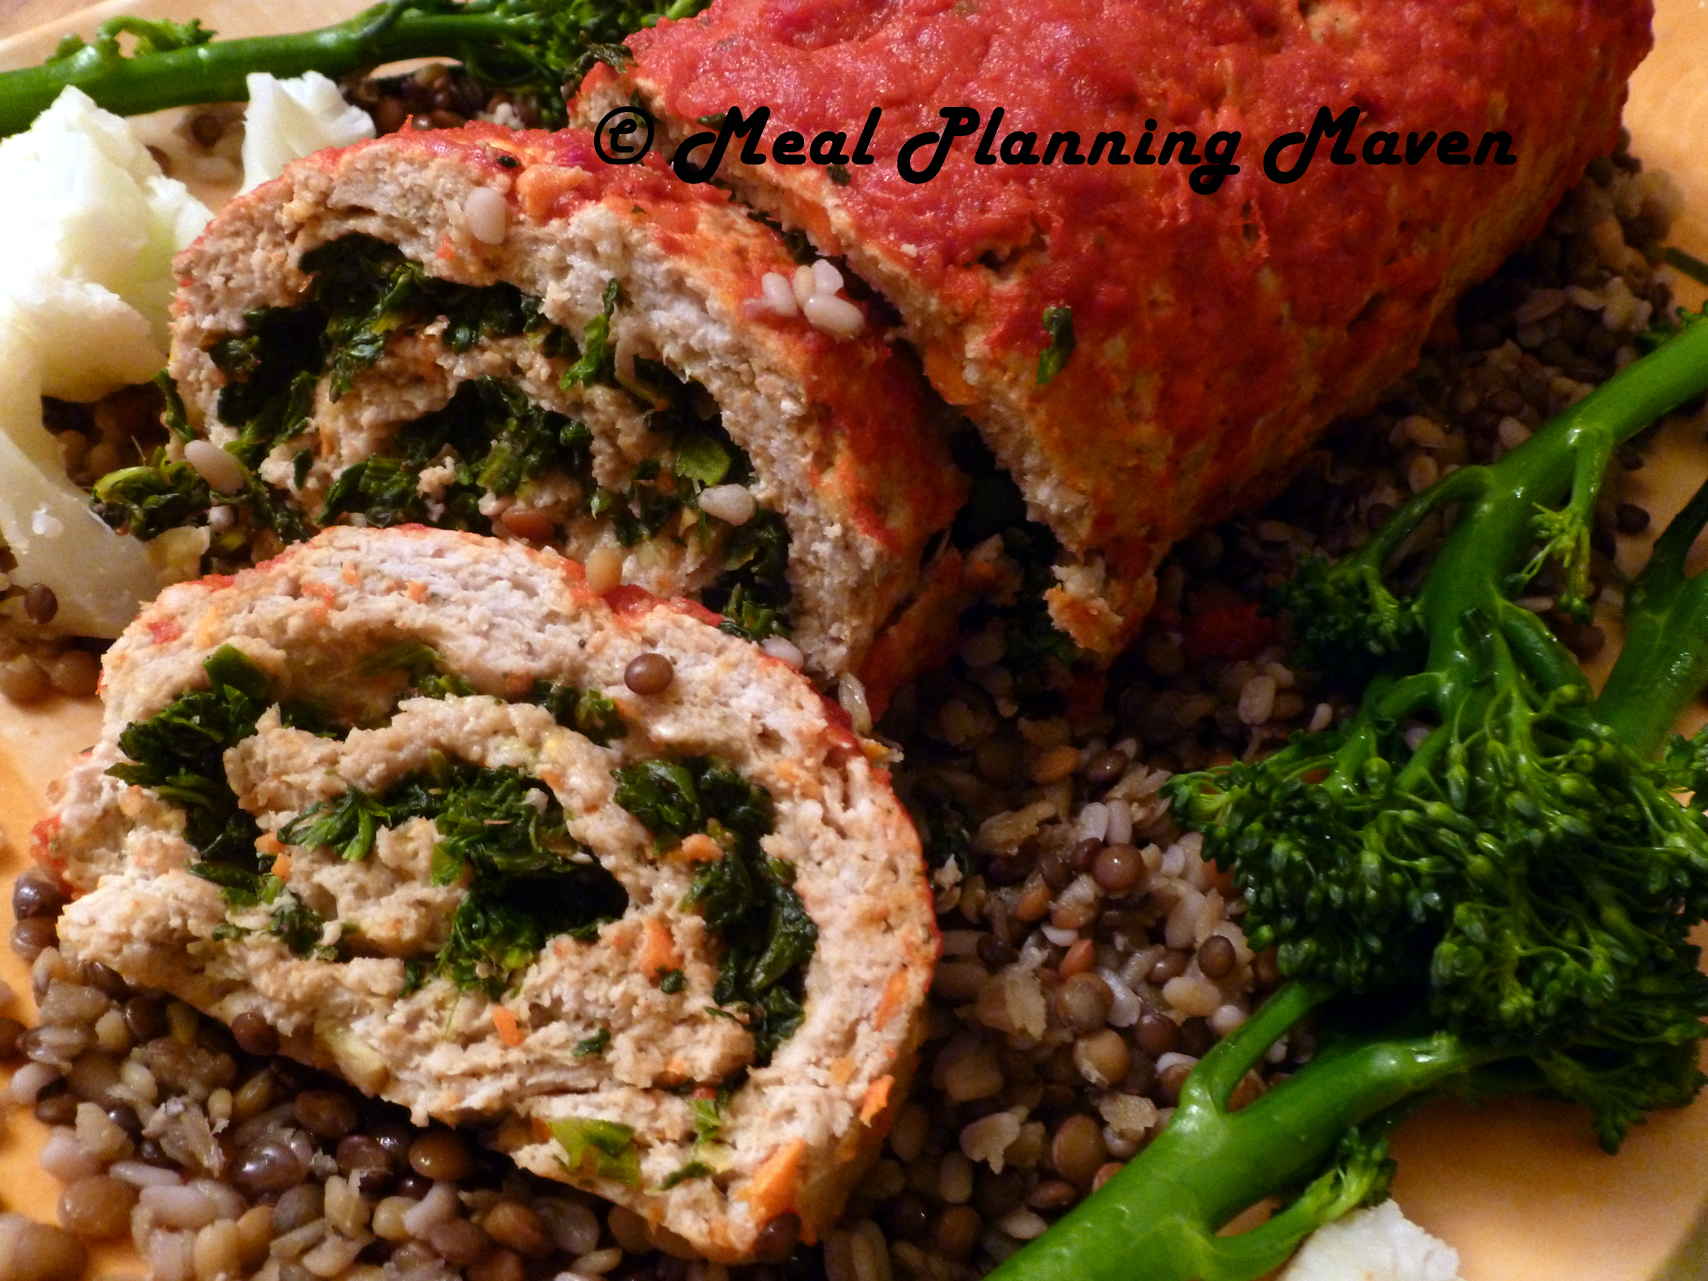 Turkey-Spinach Meatloaf Roulade